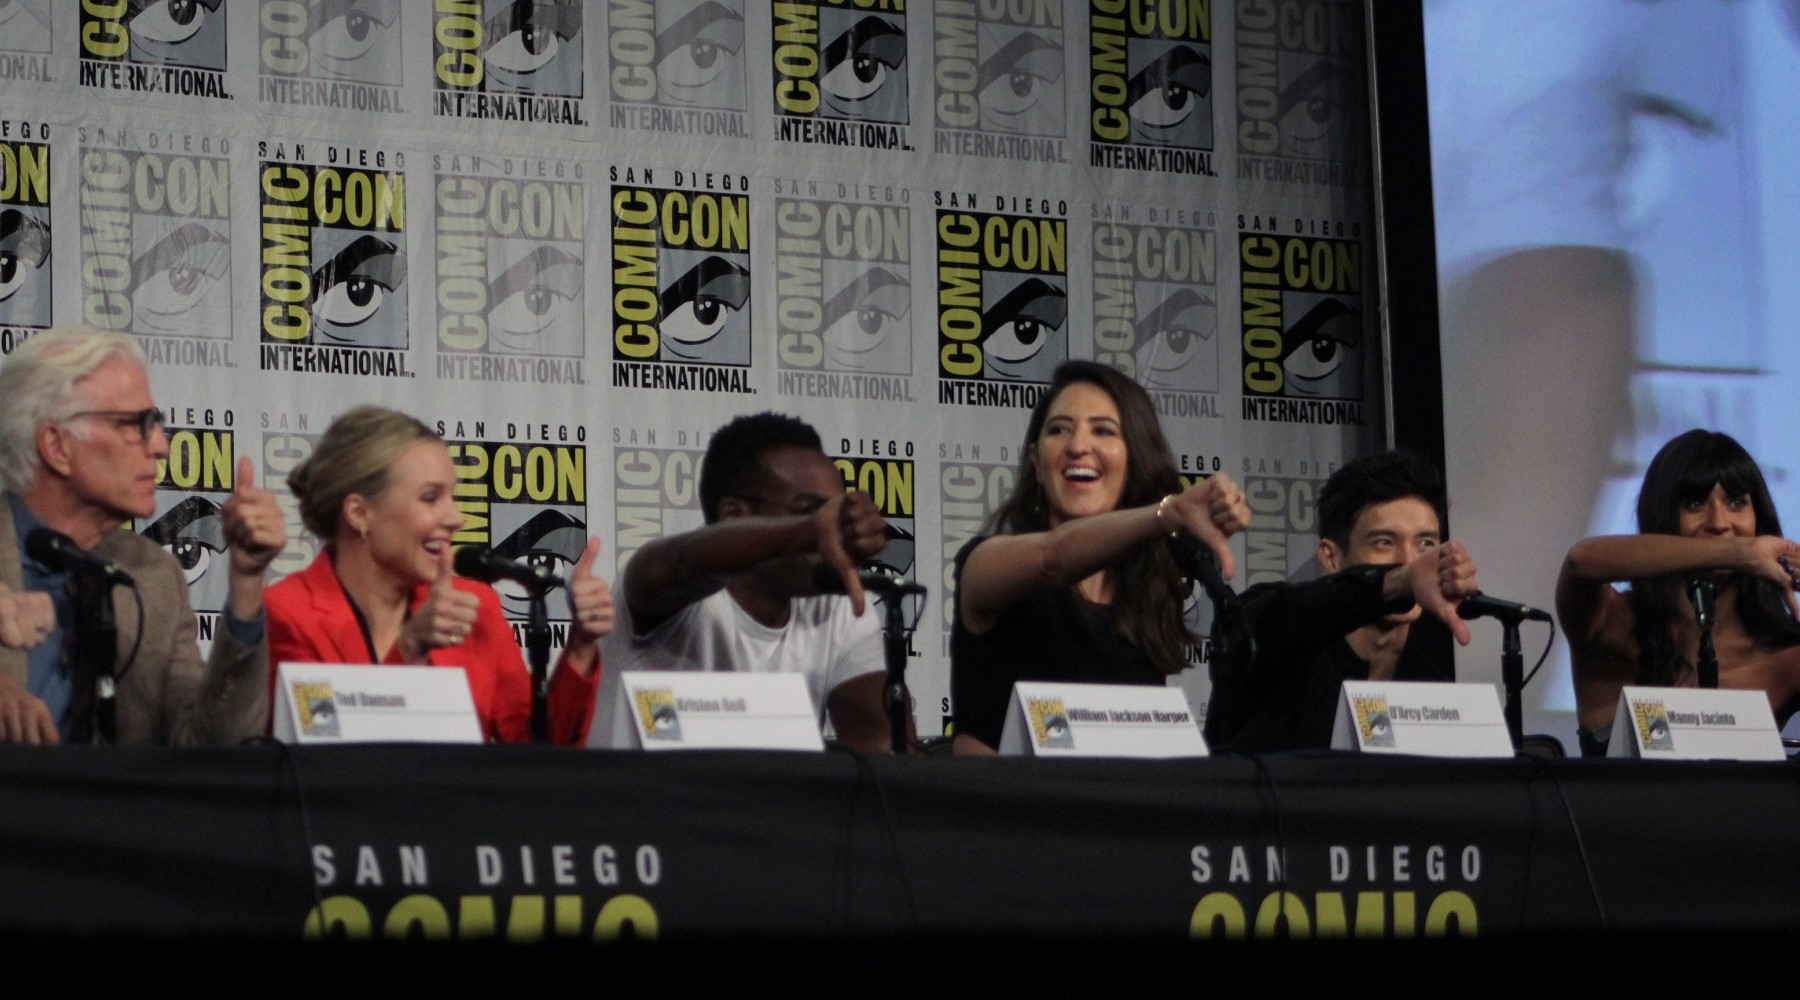 The Good Place  cast at San Diego Comic Con 2018 |  Wikimedia Commons